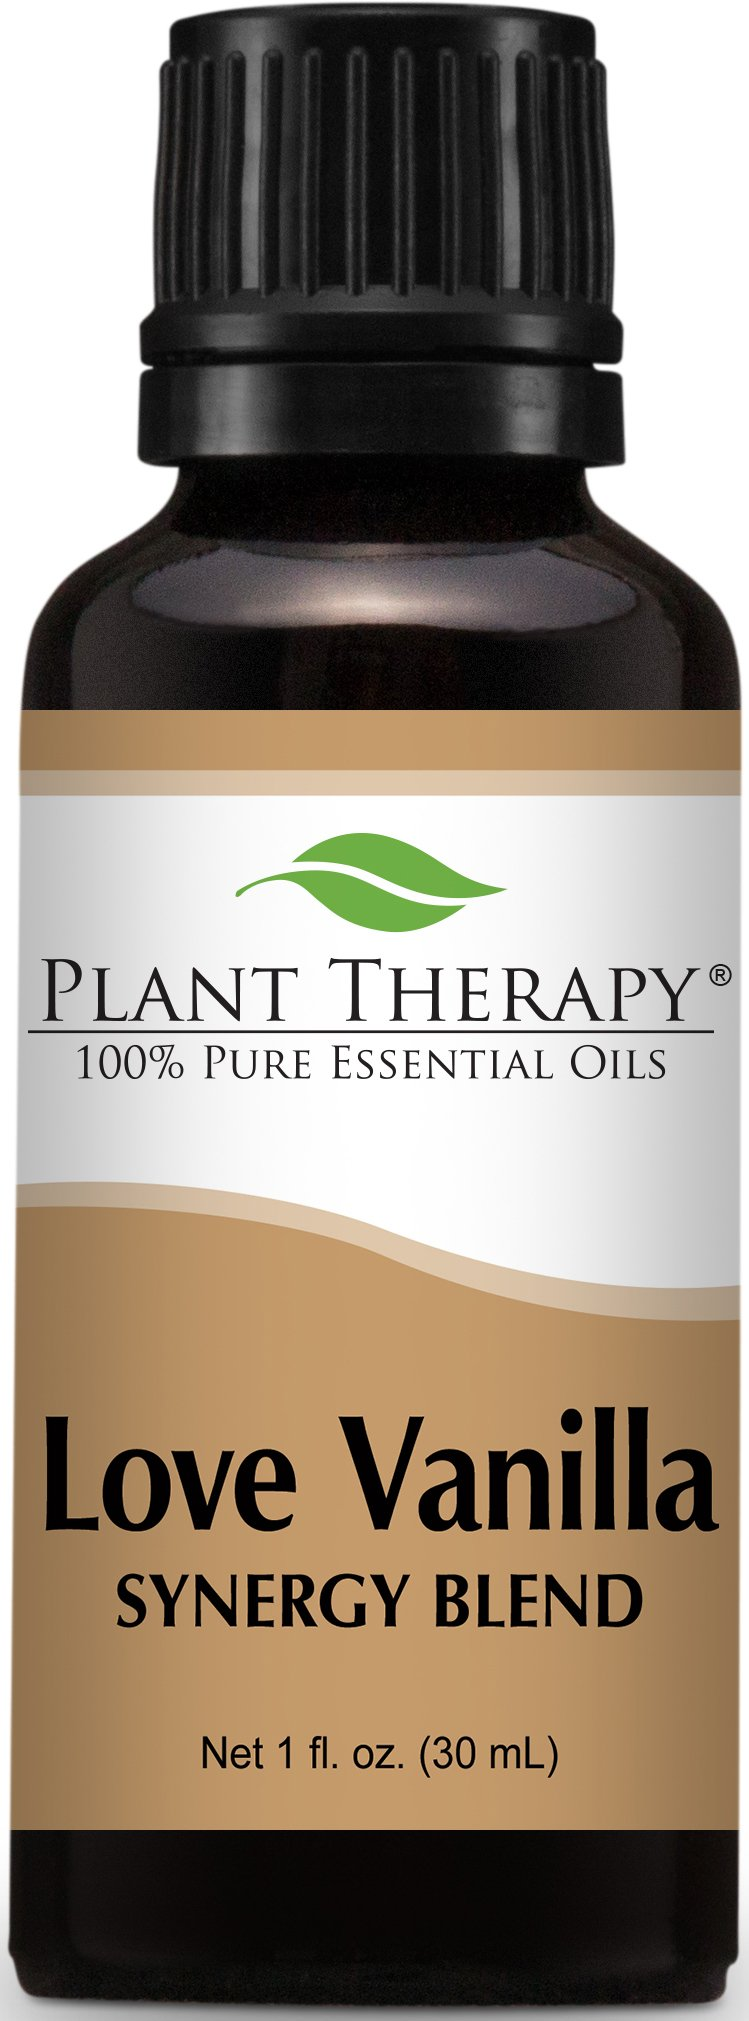 Plant Therapy Love Vanilla Synergy Essential Oil 30 mL (1 oz) 100% Pure, Undiluted, Therapeutic Grade by Plant Therapy